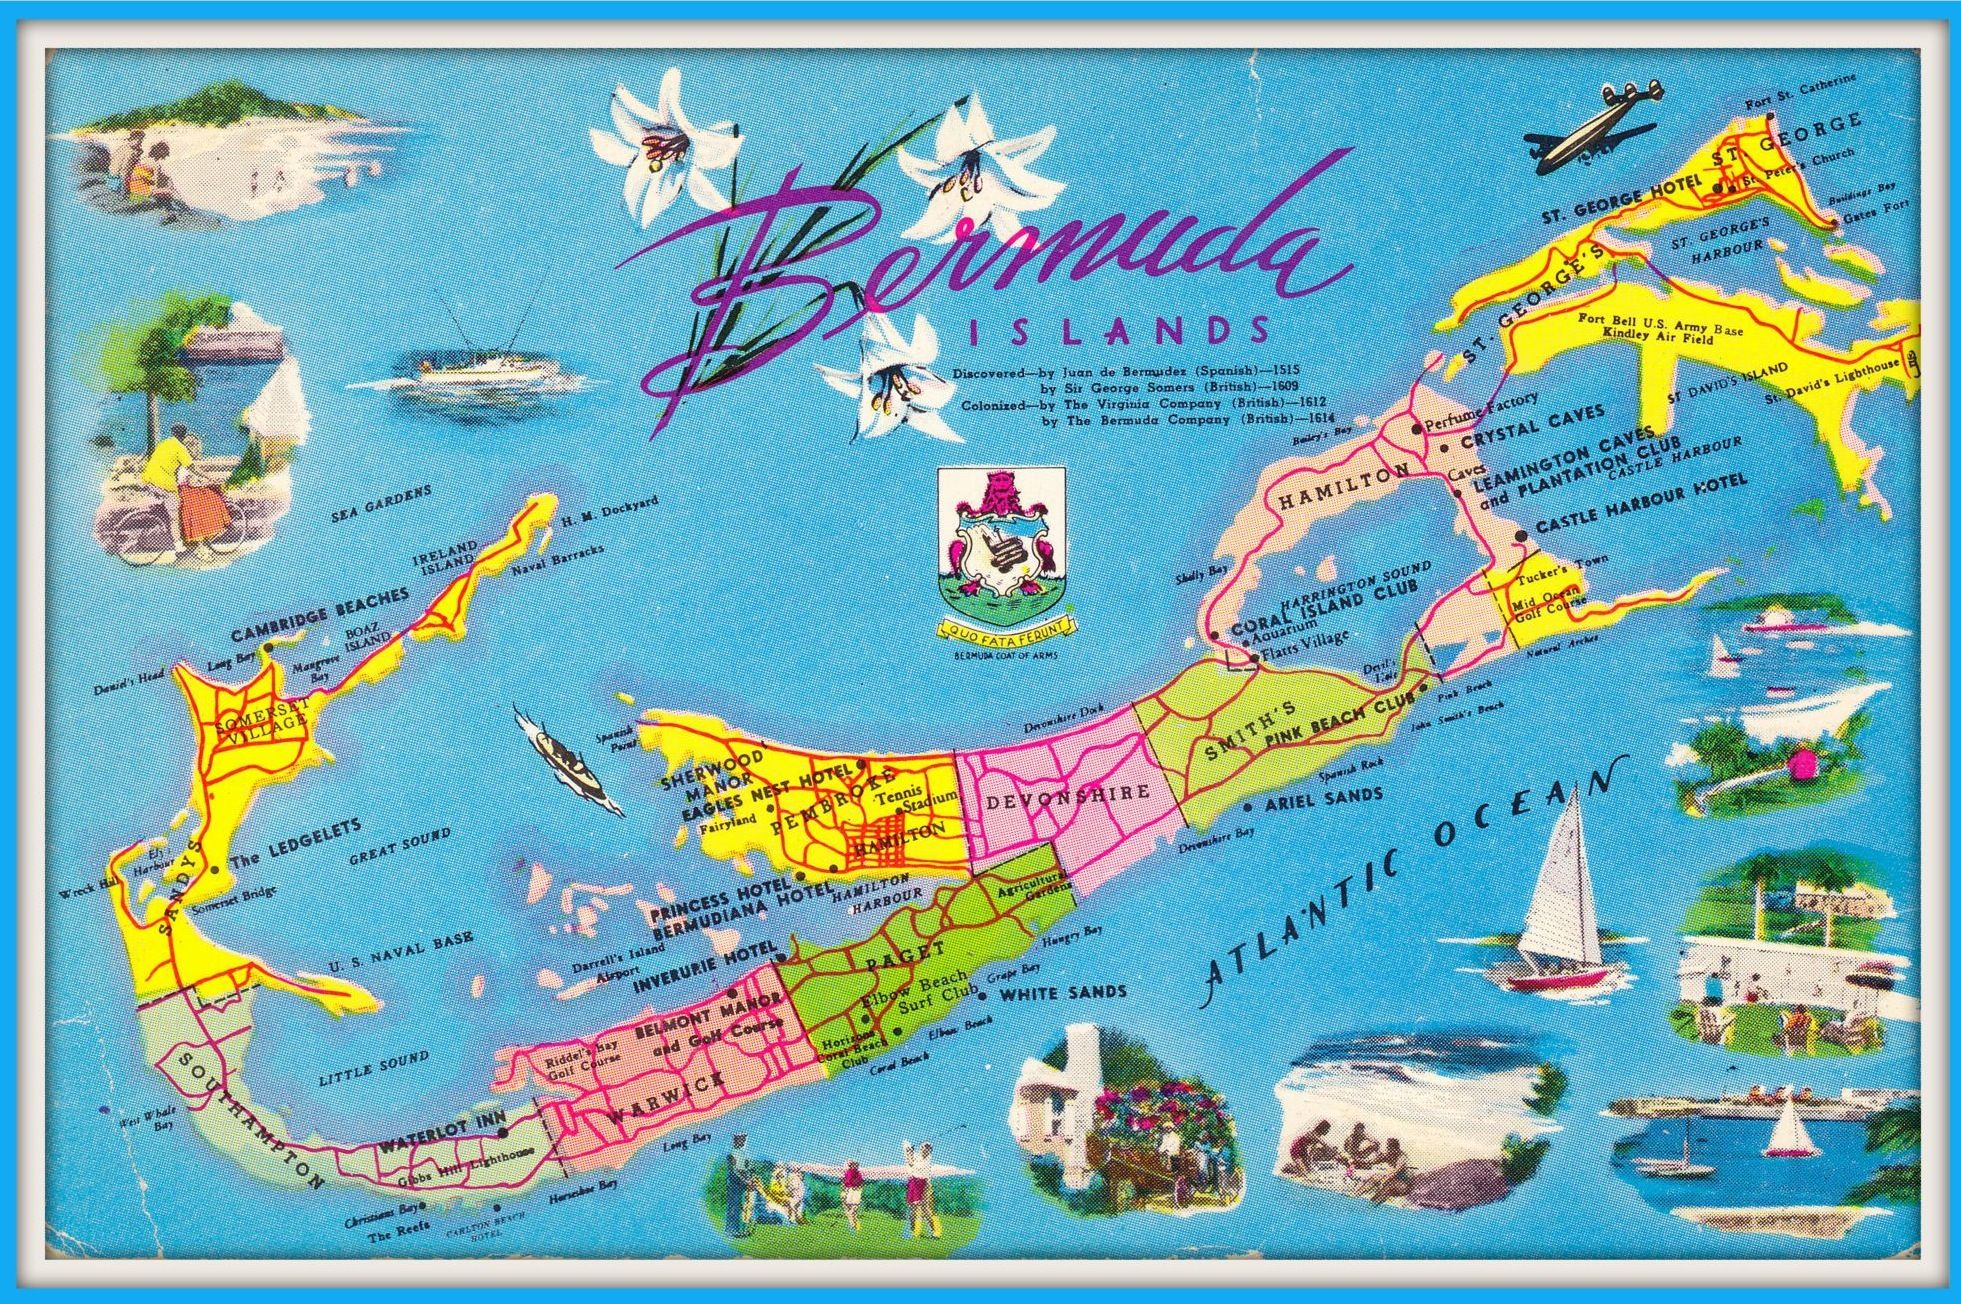 Bermuda Beach Map 1968   Bermuda map with hotels | Bermuda | Bermuda island, Bermuda